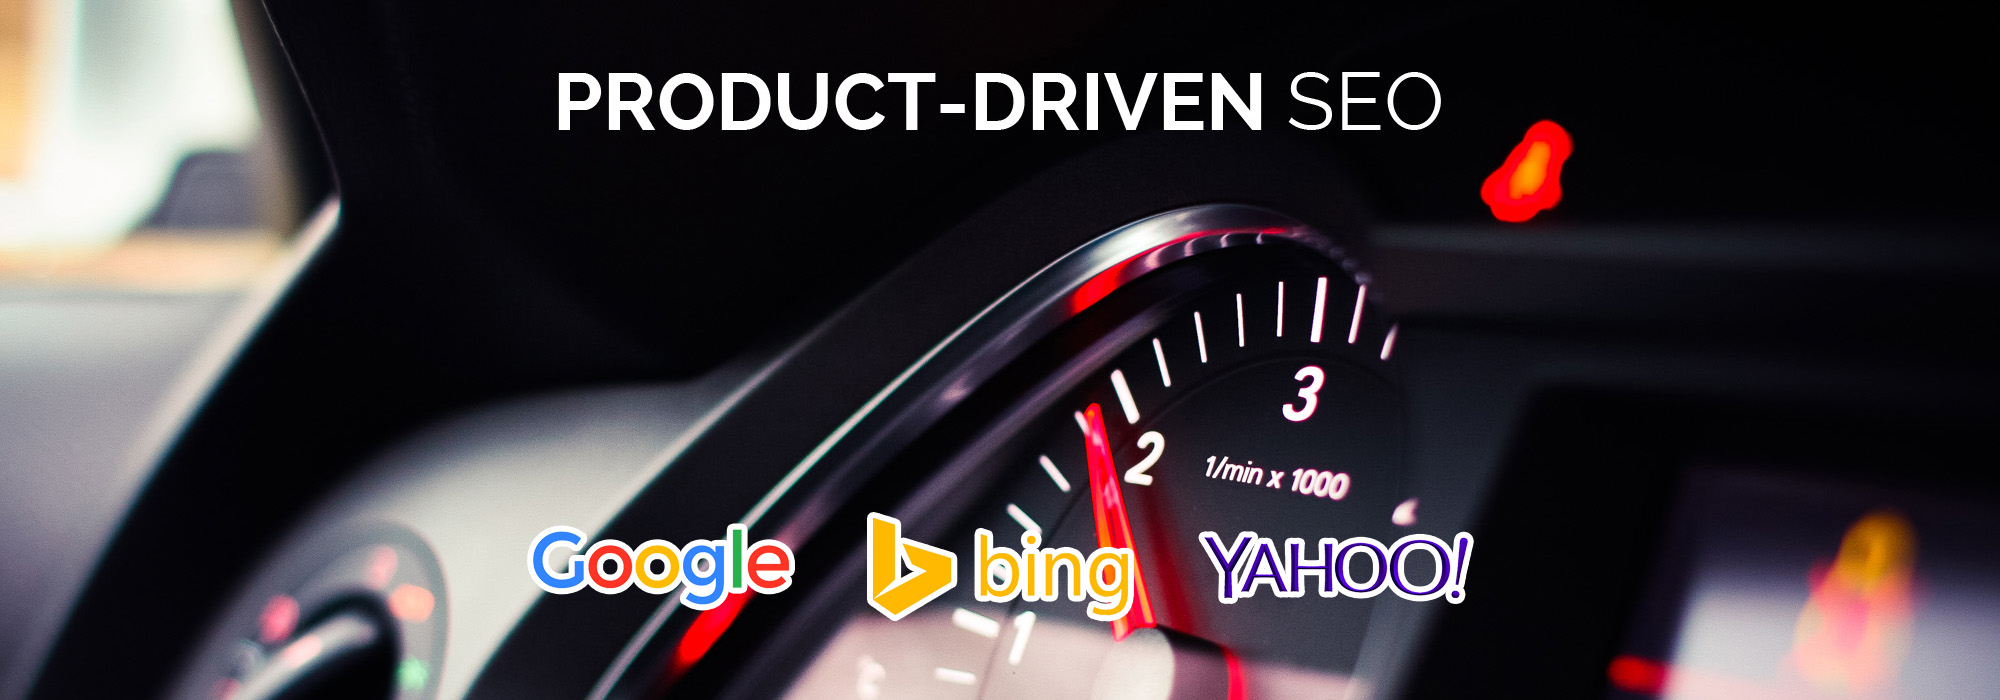 Product-Driven SEO